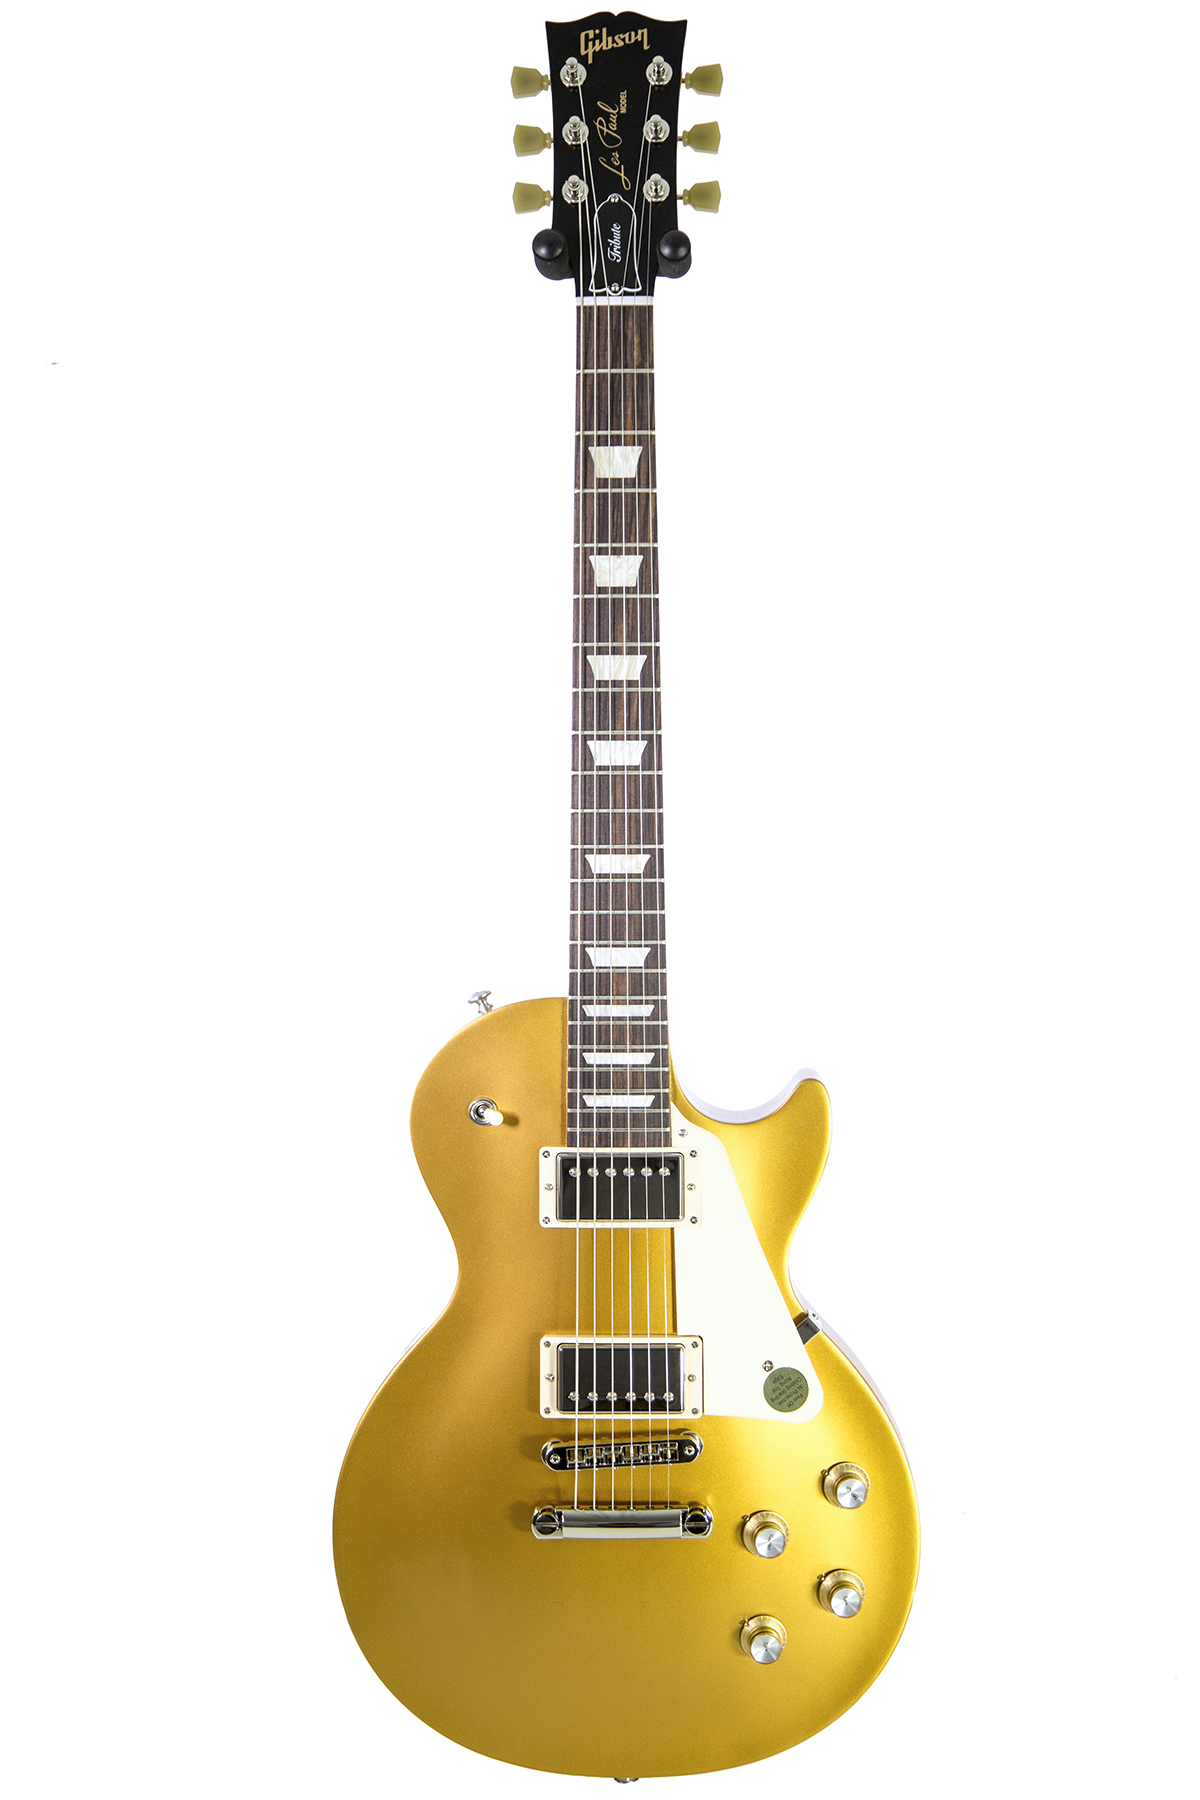 used 2018 gibson les paul tribute 2018 satin gold electric guitar new york music emporium. Black Bedroom Furniture Sets. Home Design Ideas